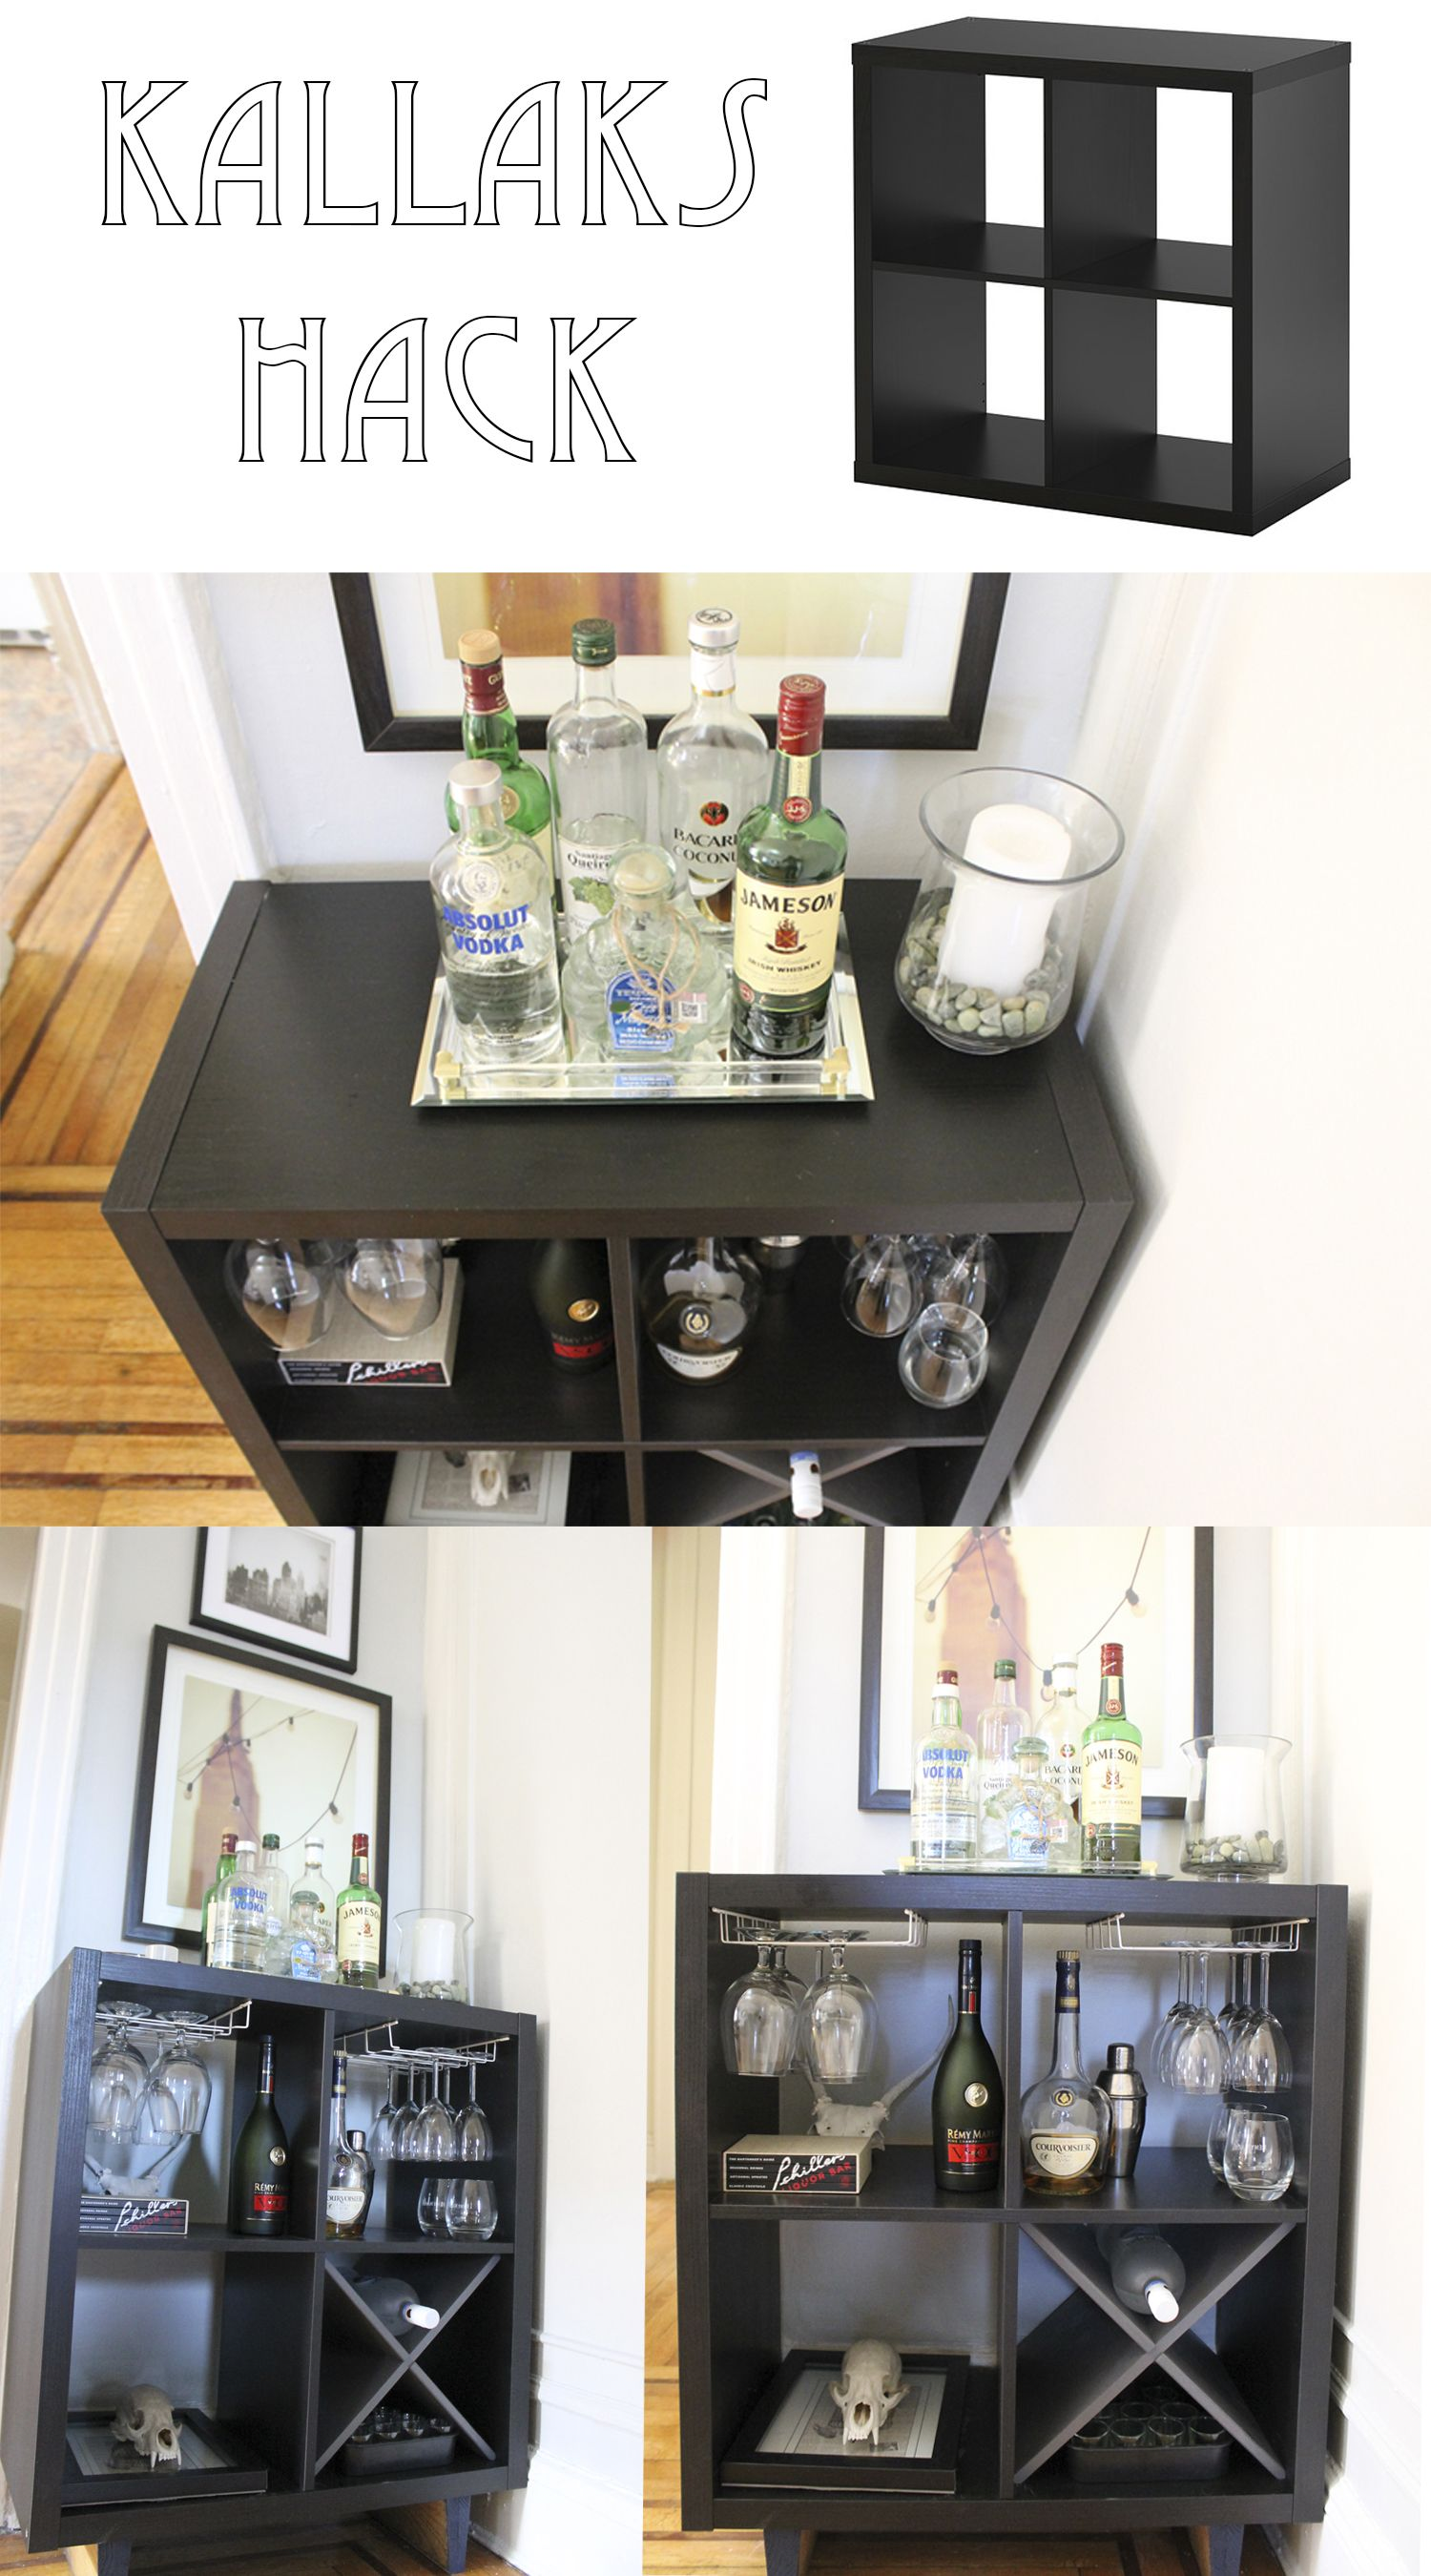 ikea kallax hack to a bar made by keeparker daily bee pinterest ikea kallax hack kallax. Black Bedroom Furniture Sets. Home Design Ideas